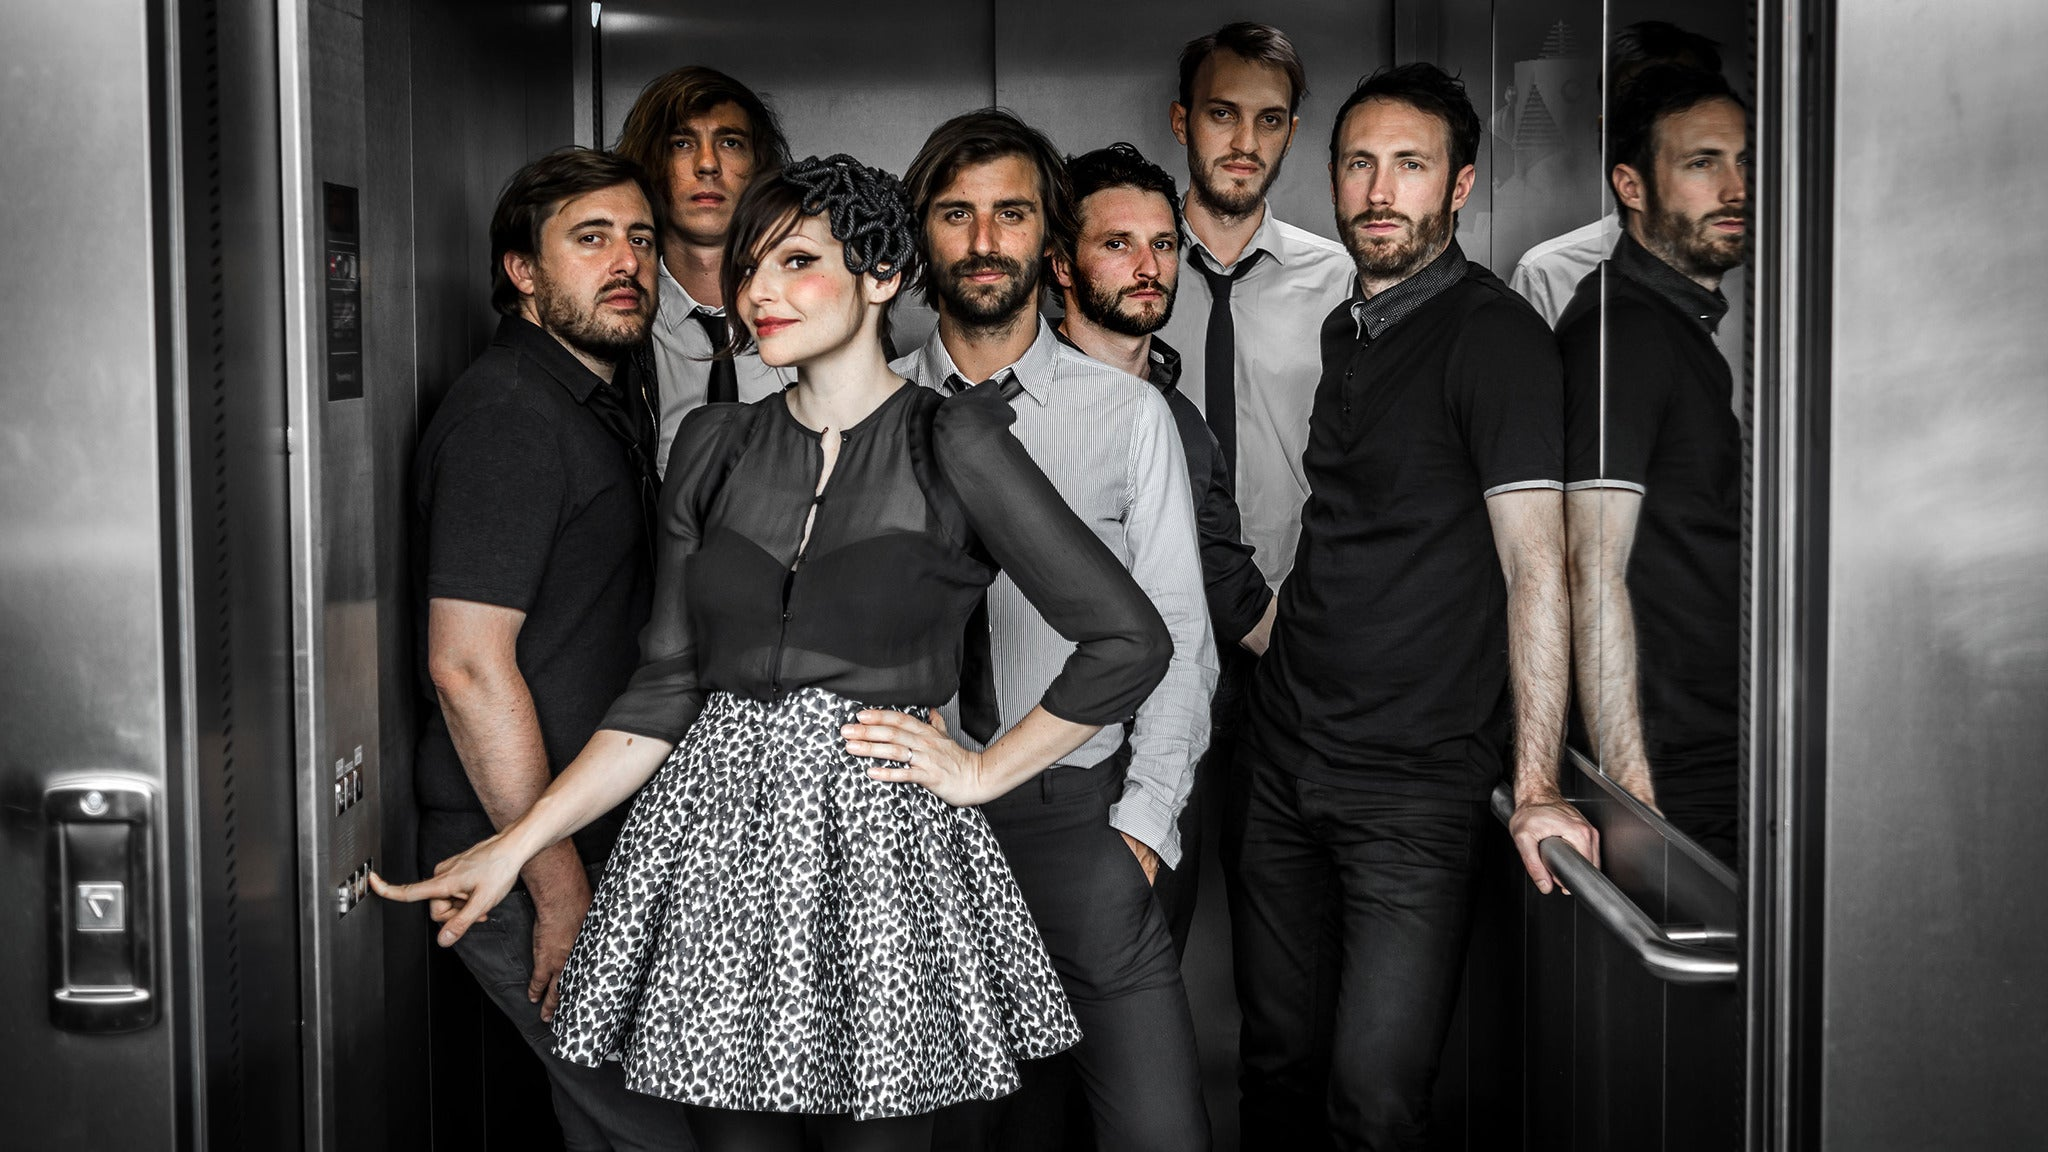 Caravan Palace at Fox Theater - Oakland